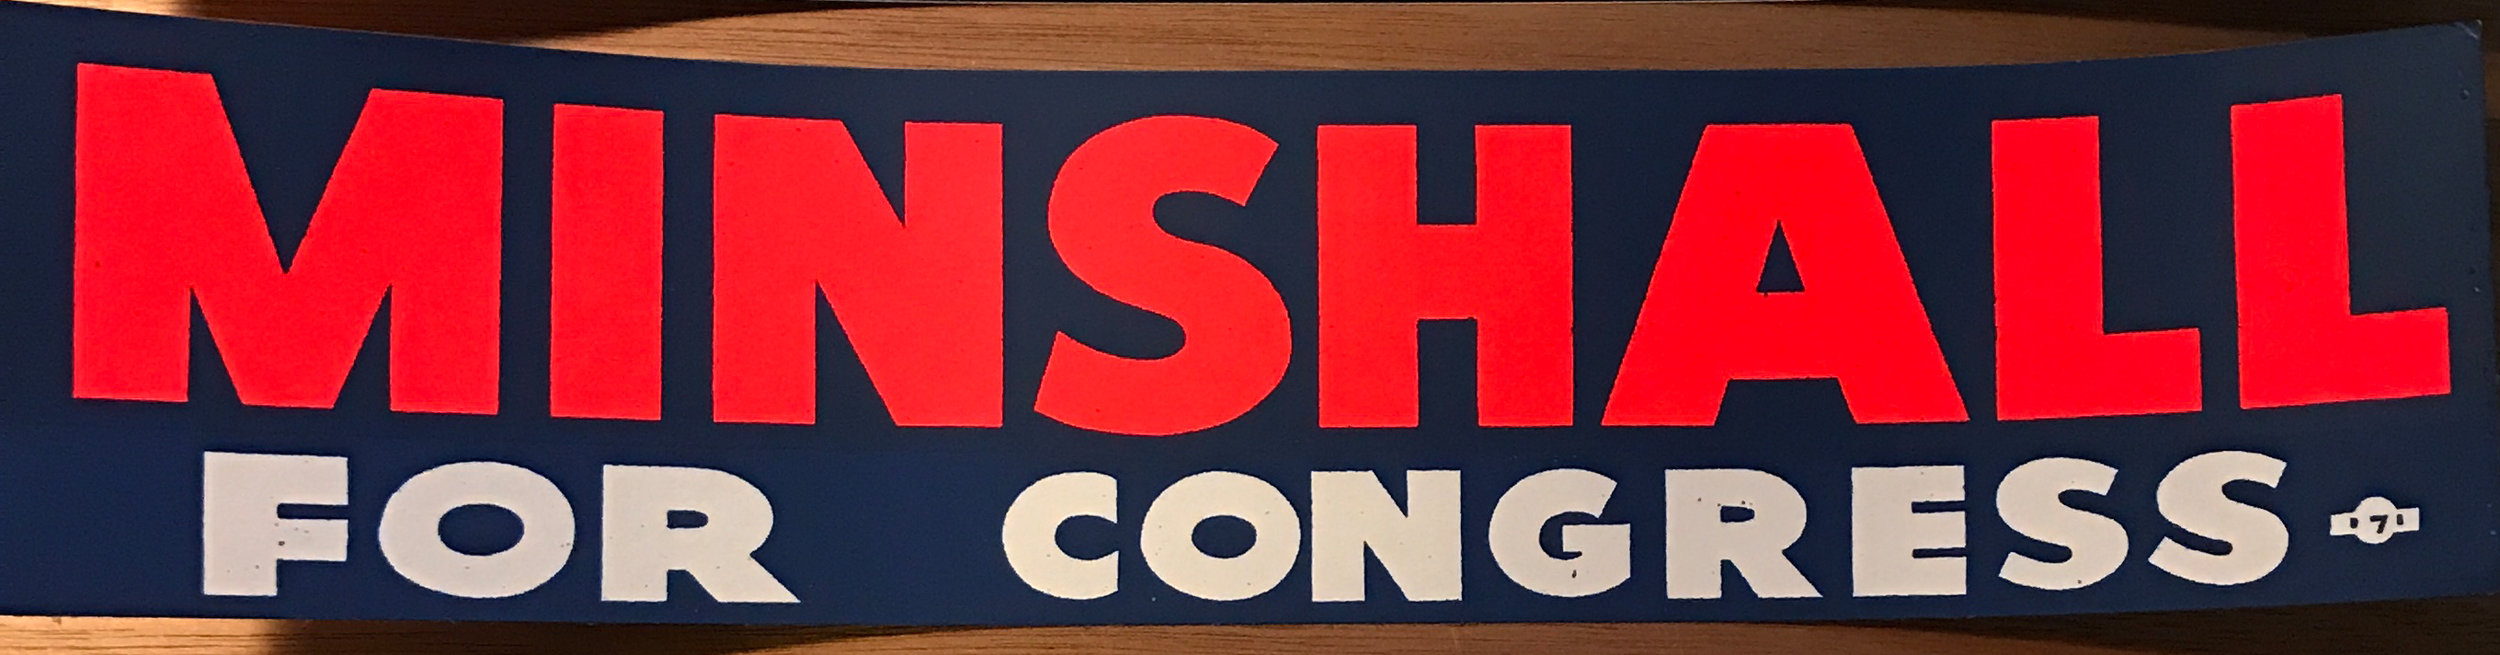 Sticker-congress MINSHALL 1.jpg